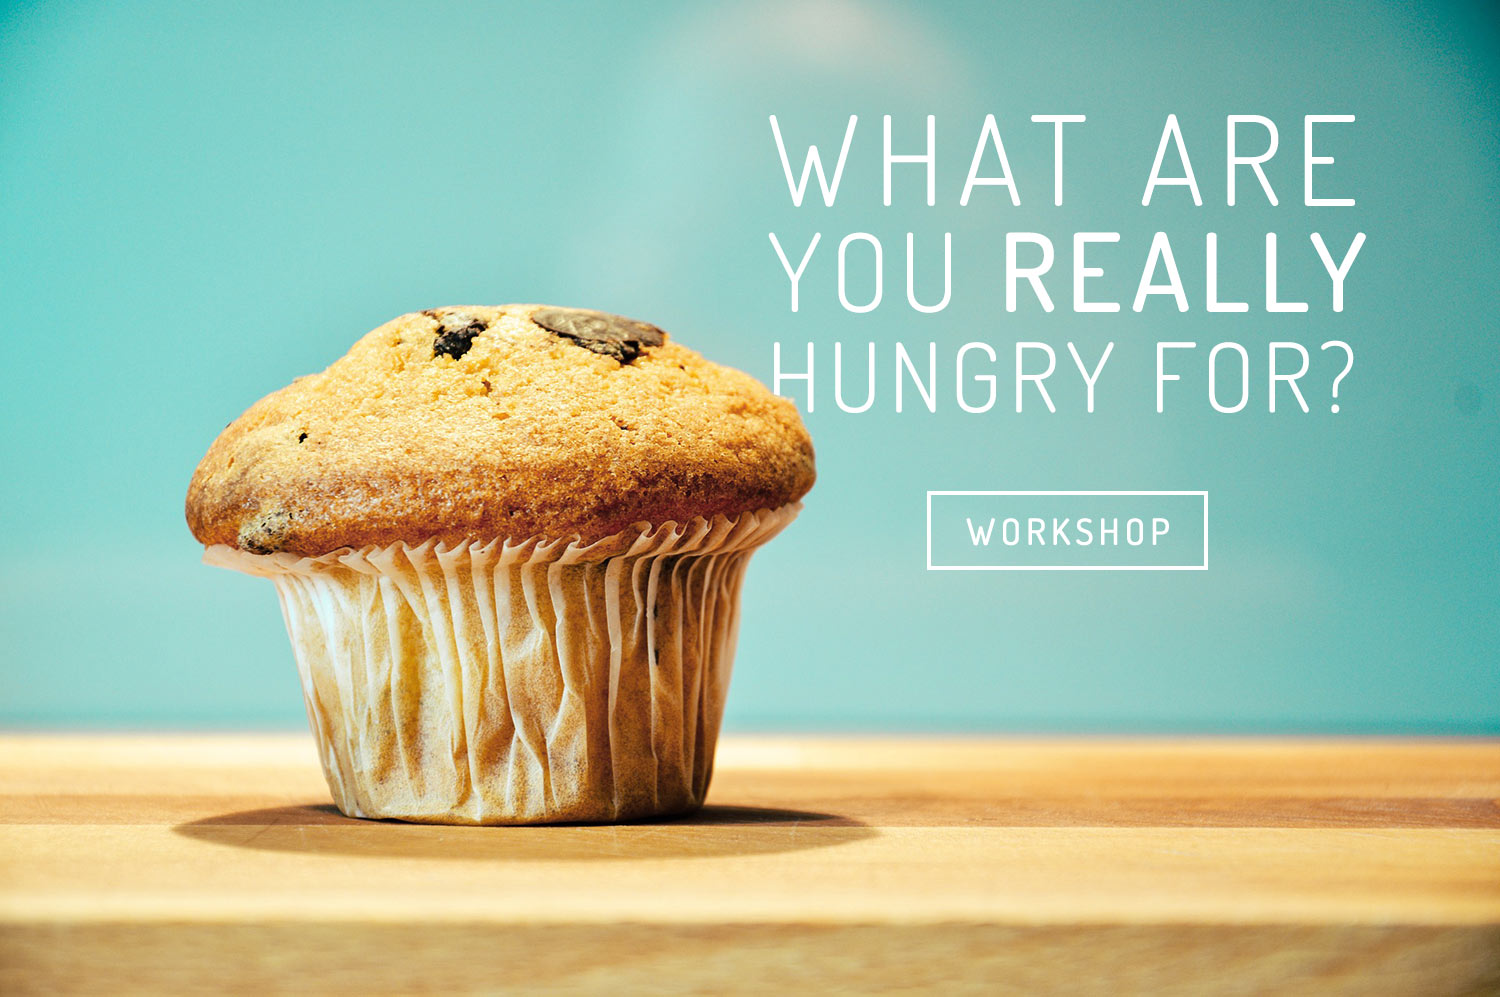 What Are You Hungry For Workshop